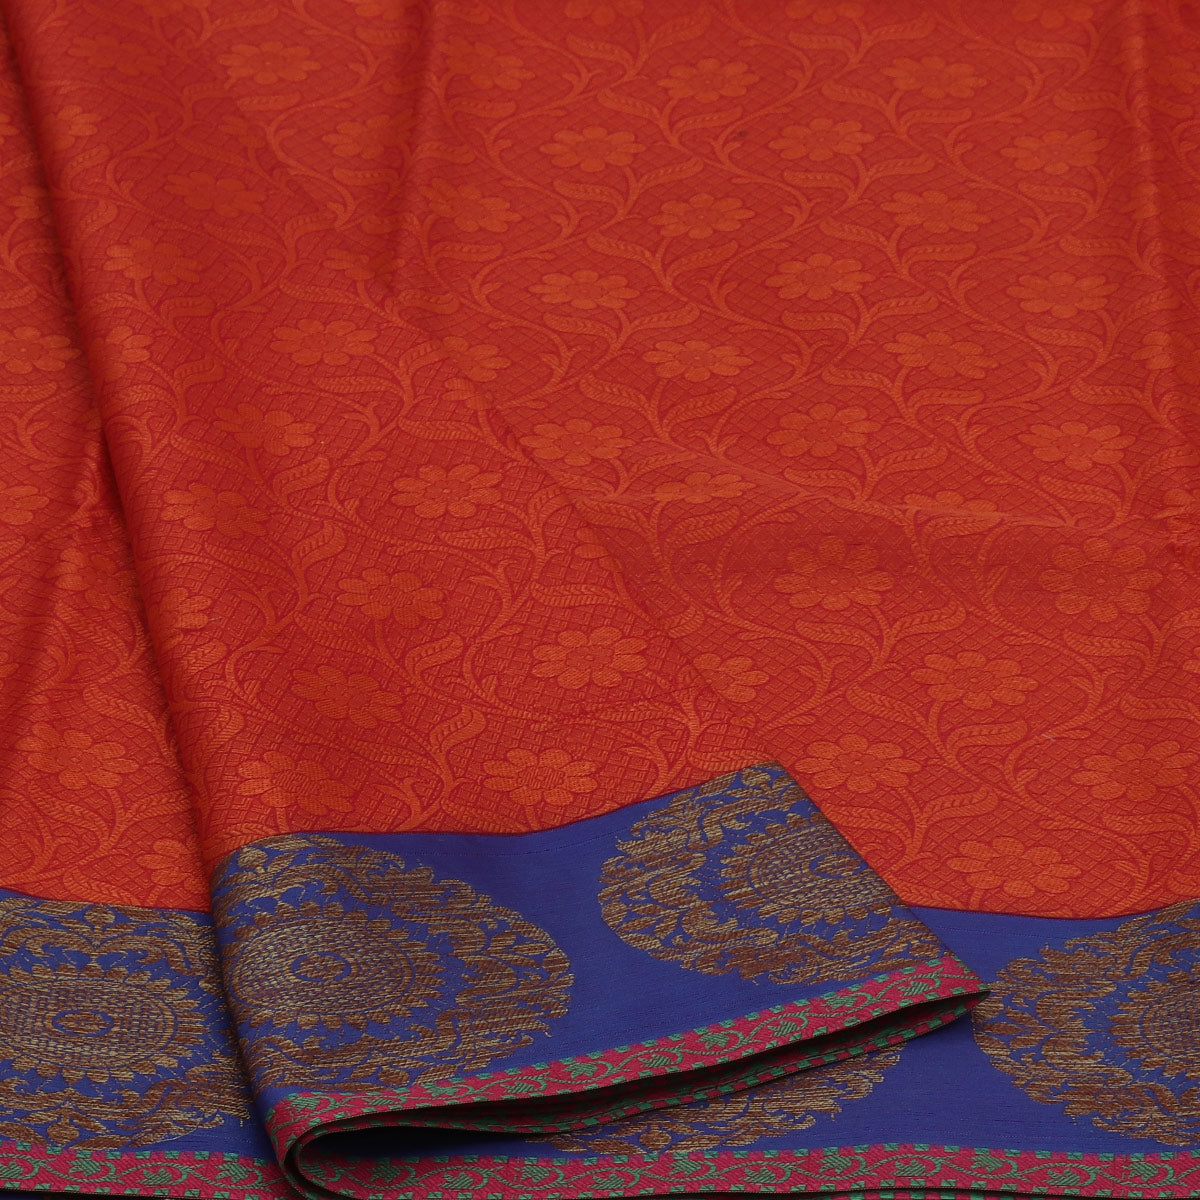 Banarasi Kora Muslin Saree Brick Orange and Blue with Round Flower border